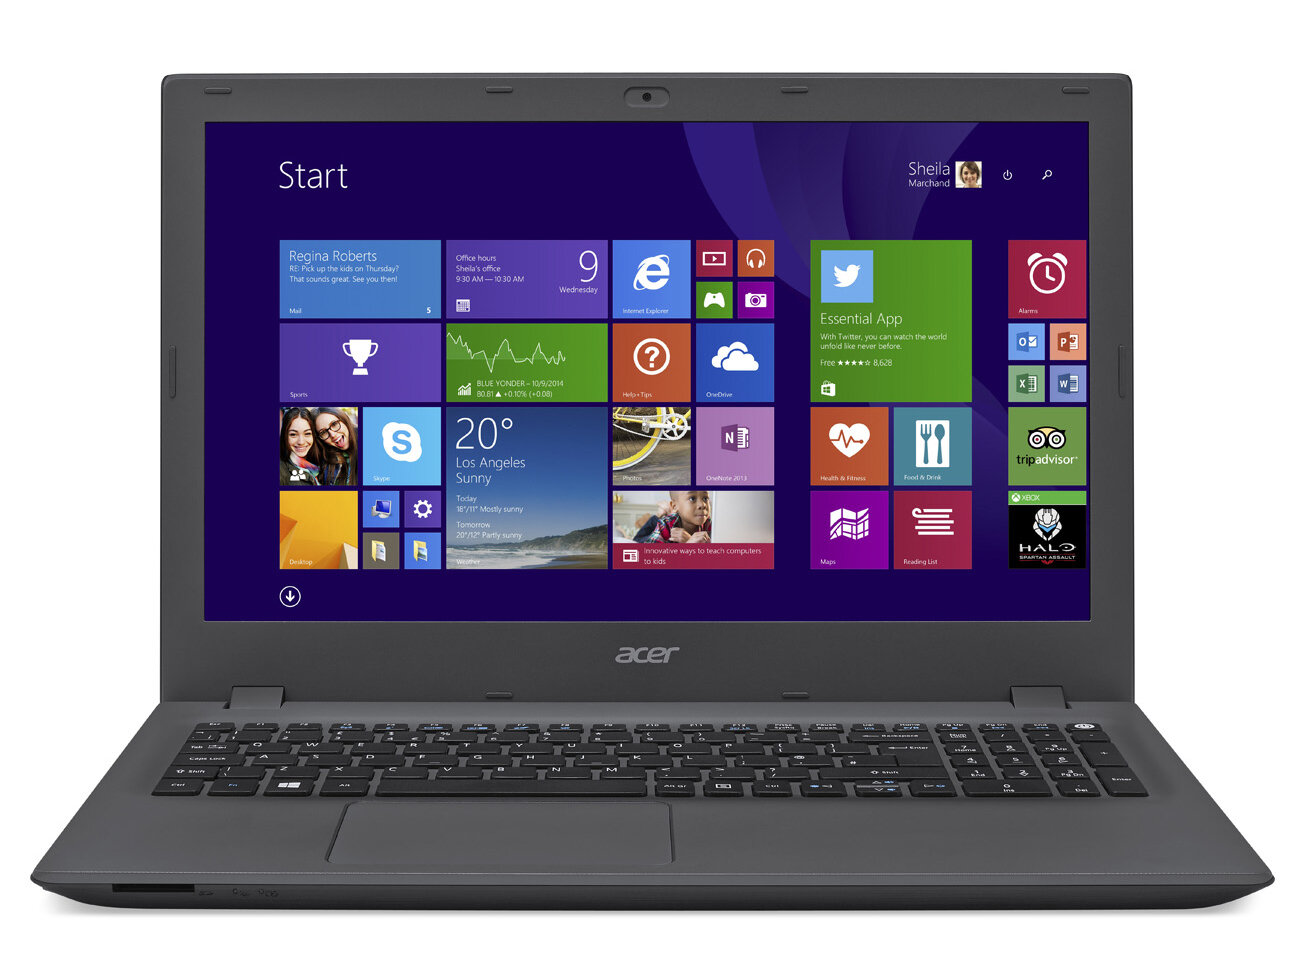 Laptop Acer Aspire E5-573-59YQ NX.MVHSV.009 - Core i5-4210U, Ram 4GB, HDD 500GB